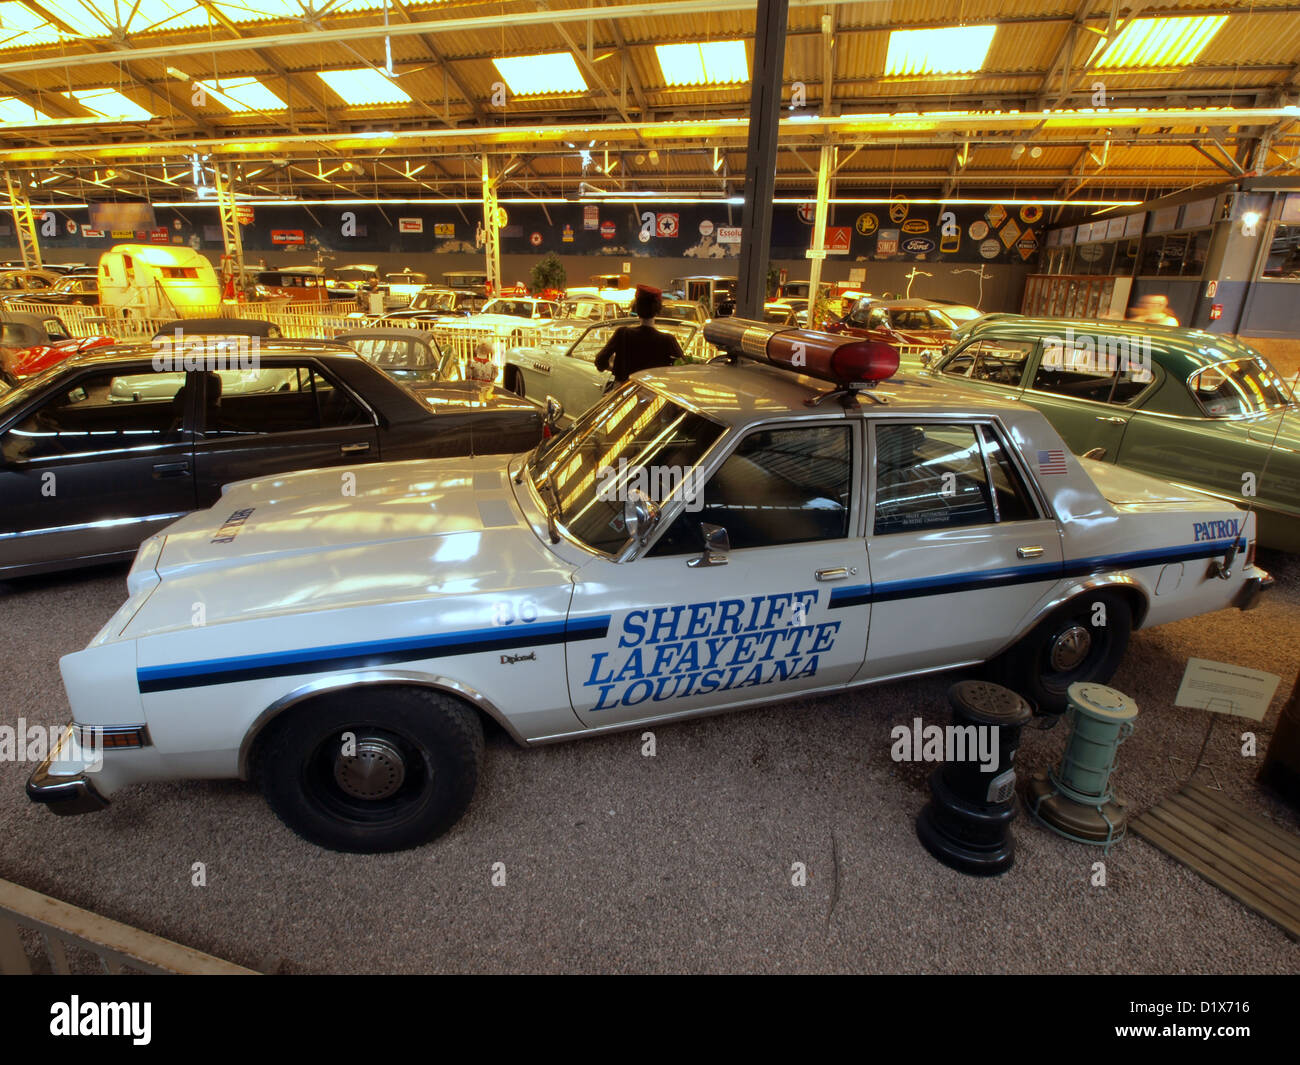 Diplomat Car Stock Photos Images Alamy 1964 Dodge Police Automobile Museum Reims Champagne 1981 Sheriff Lafayette Louisiana